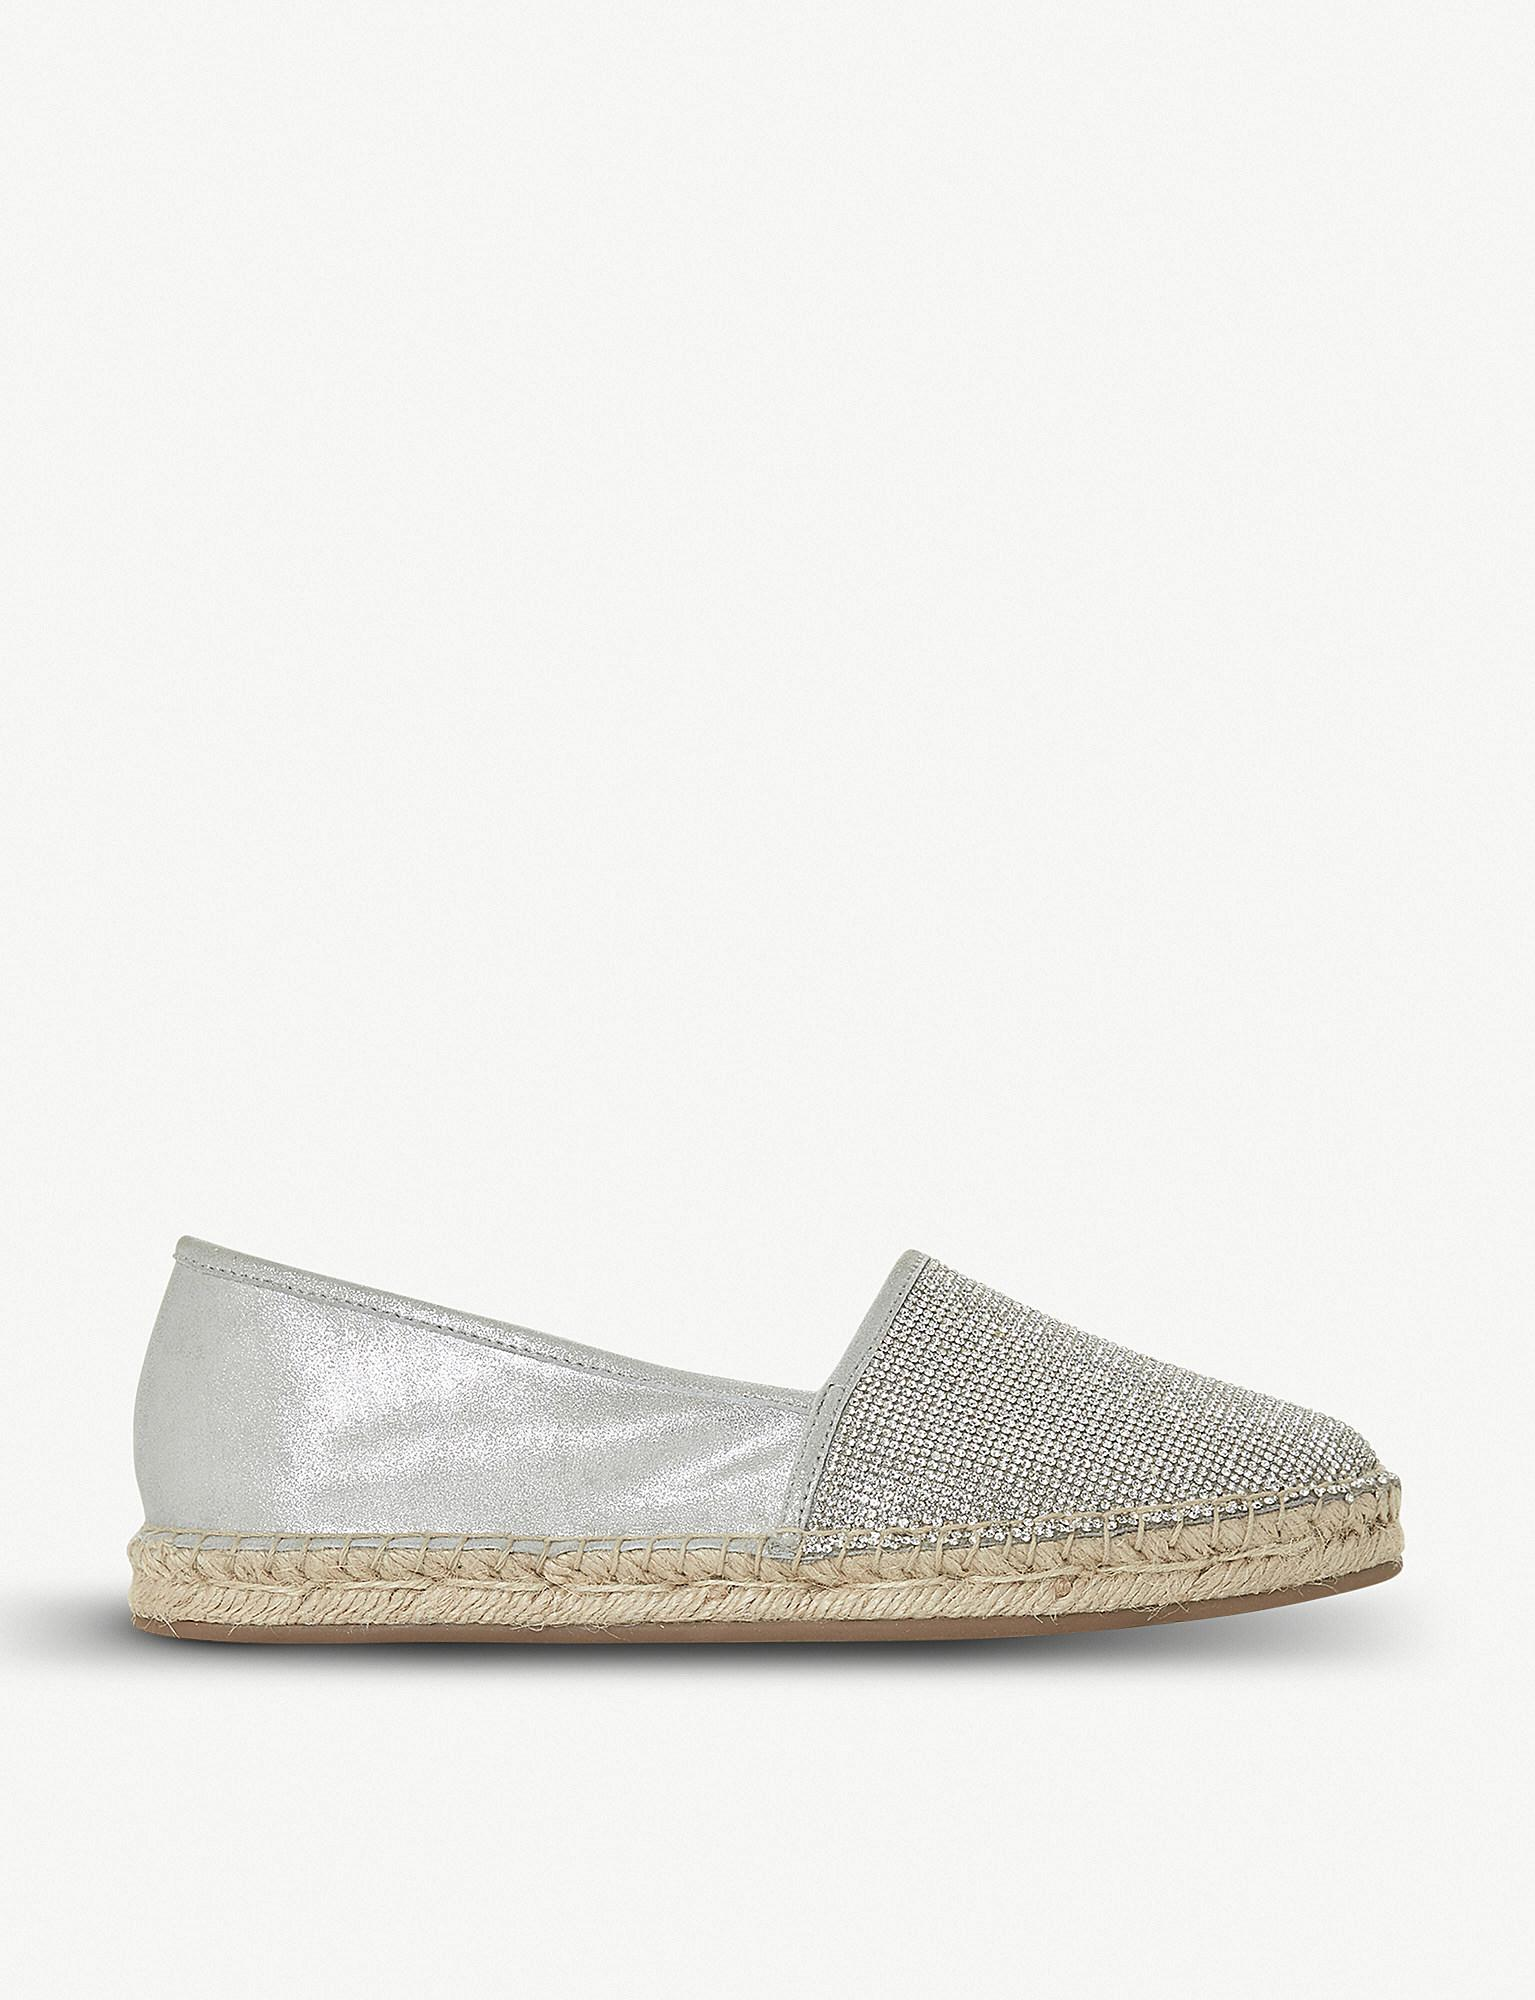 Multicoloured leather 'graci' espadrilles clearance collections discount under $60 outlet latest collections sale geniue stockist cheap sale visa payment RylQqaYIdW